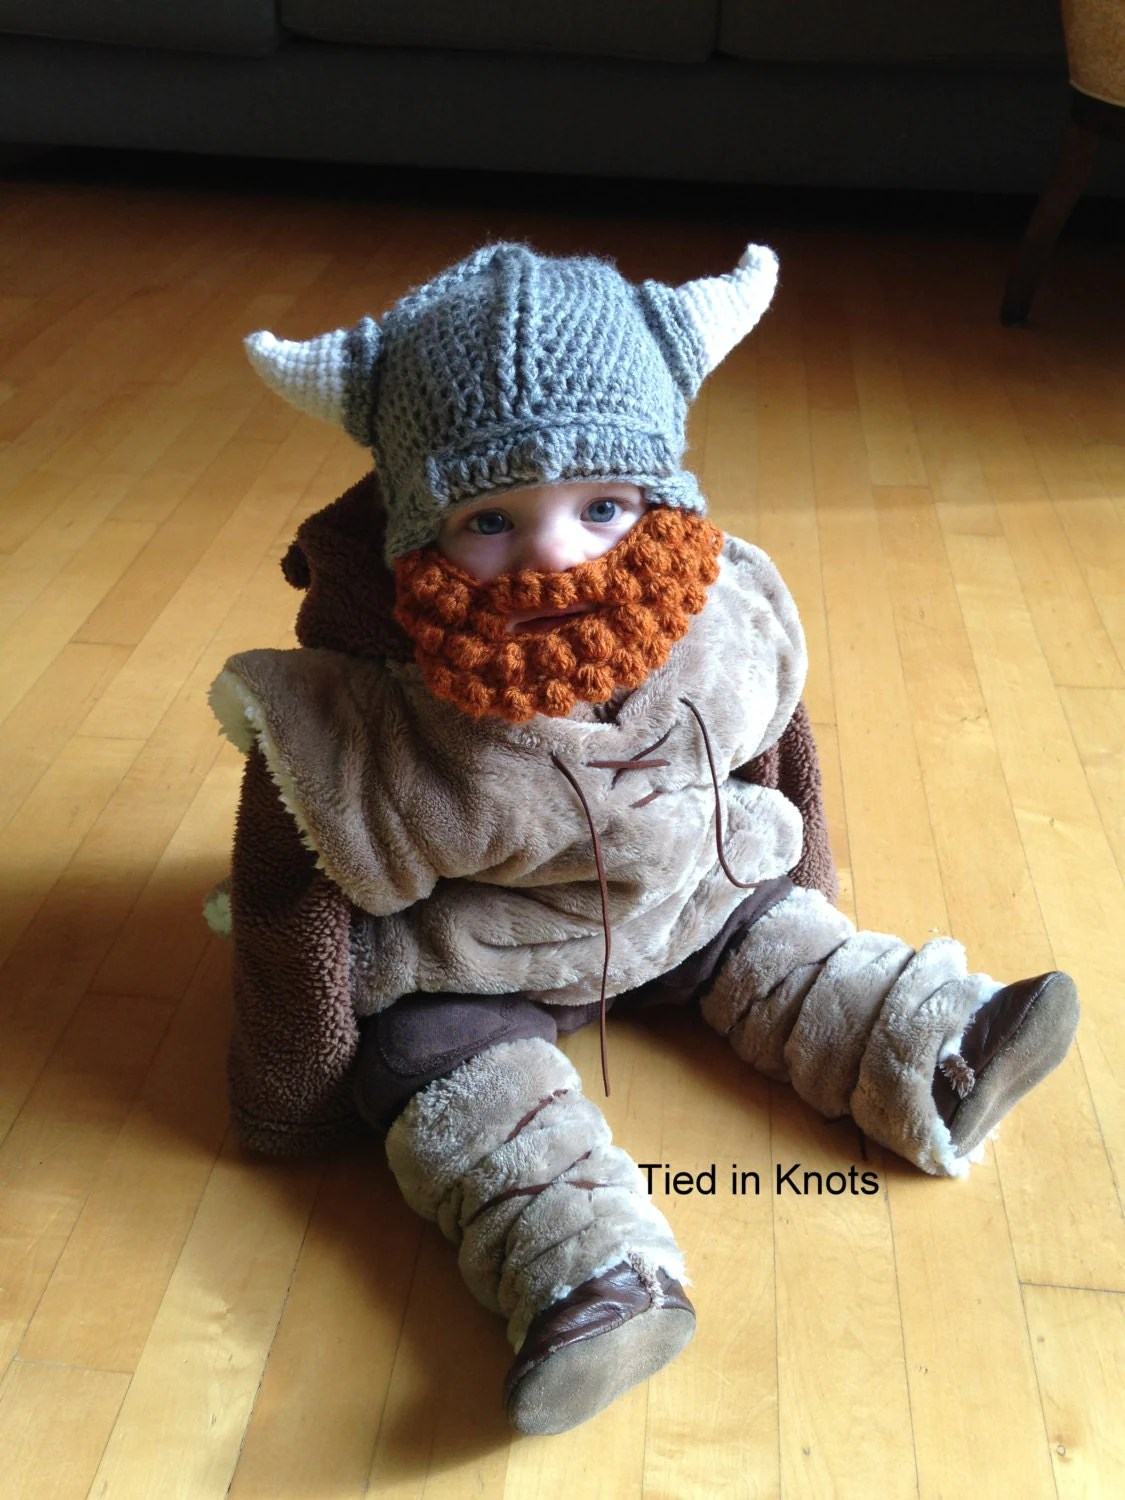 Baby Faschingskostüm Selber Machen Baby Viking Hat With Beard Crochet Baby Viking Hat With